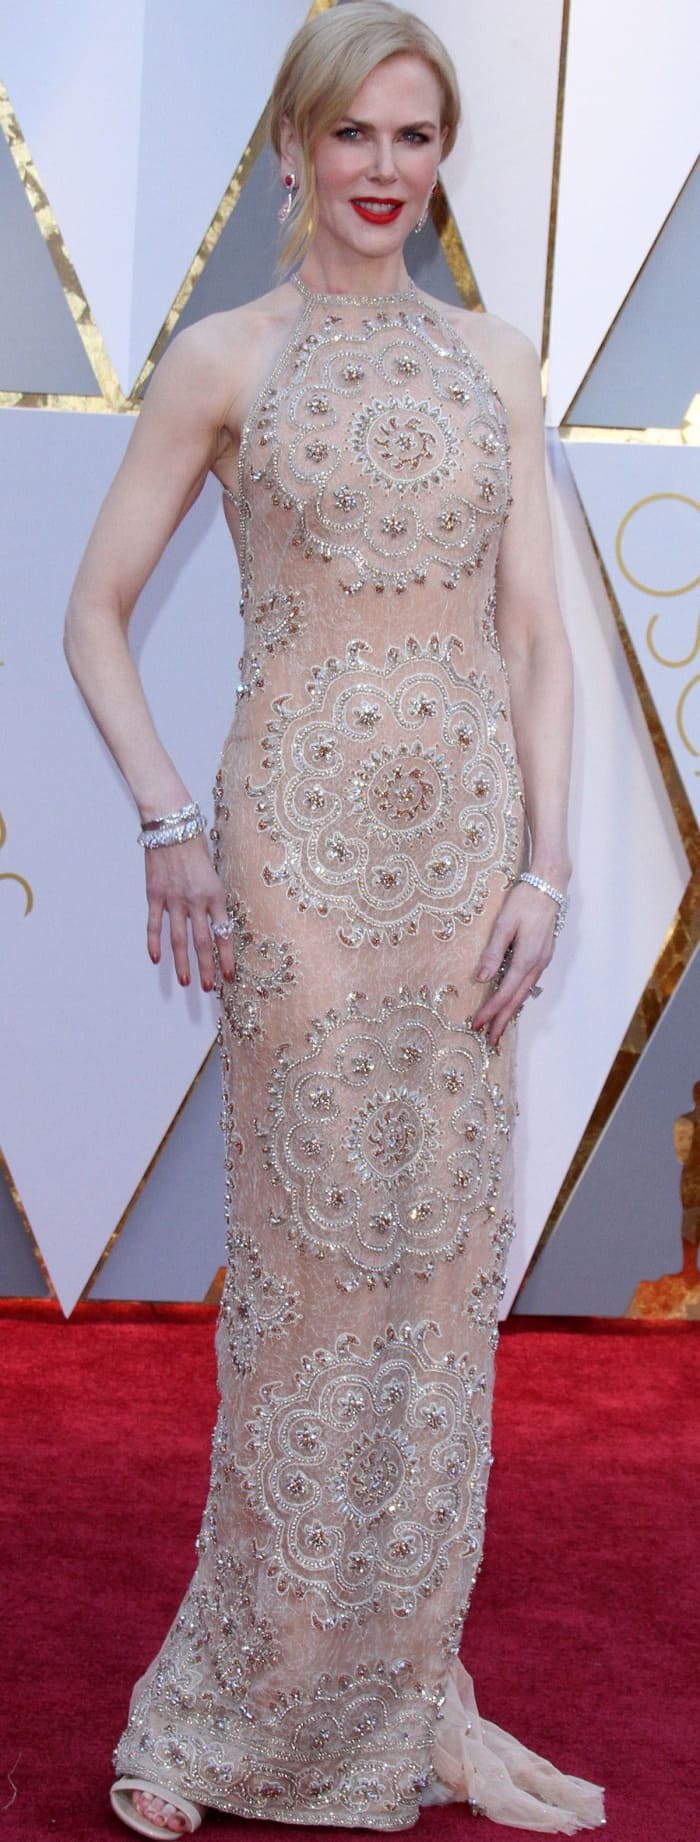 Nicole Kidman wearing a nude Armani Privé embellished column gown at the 2017 Oscars